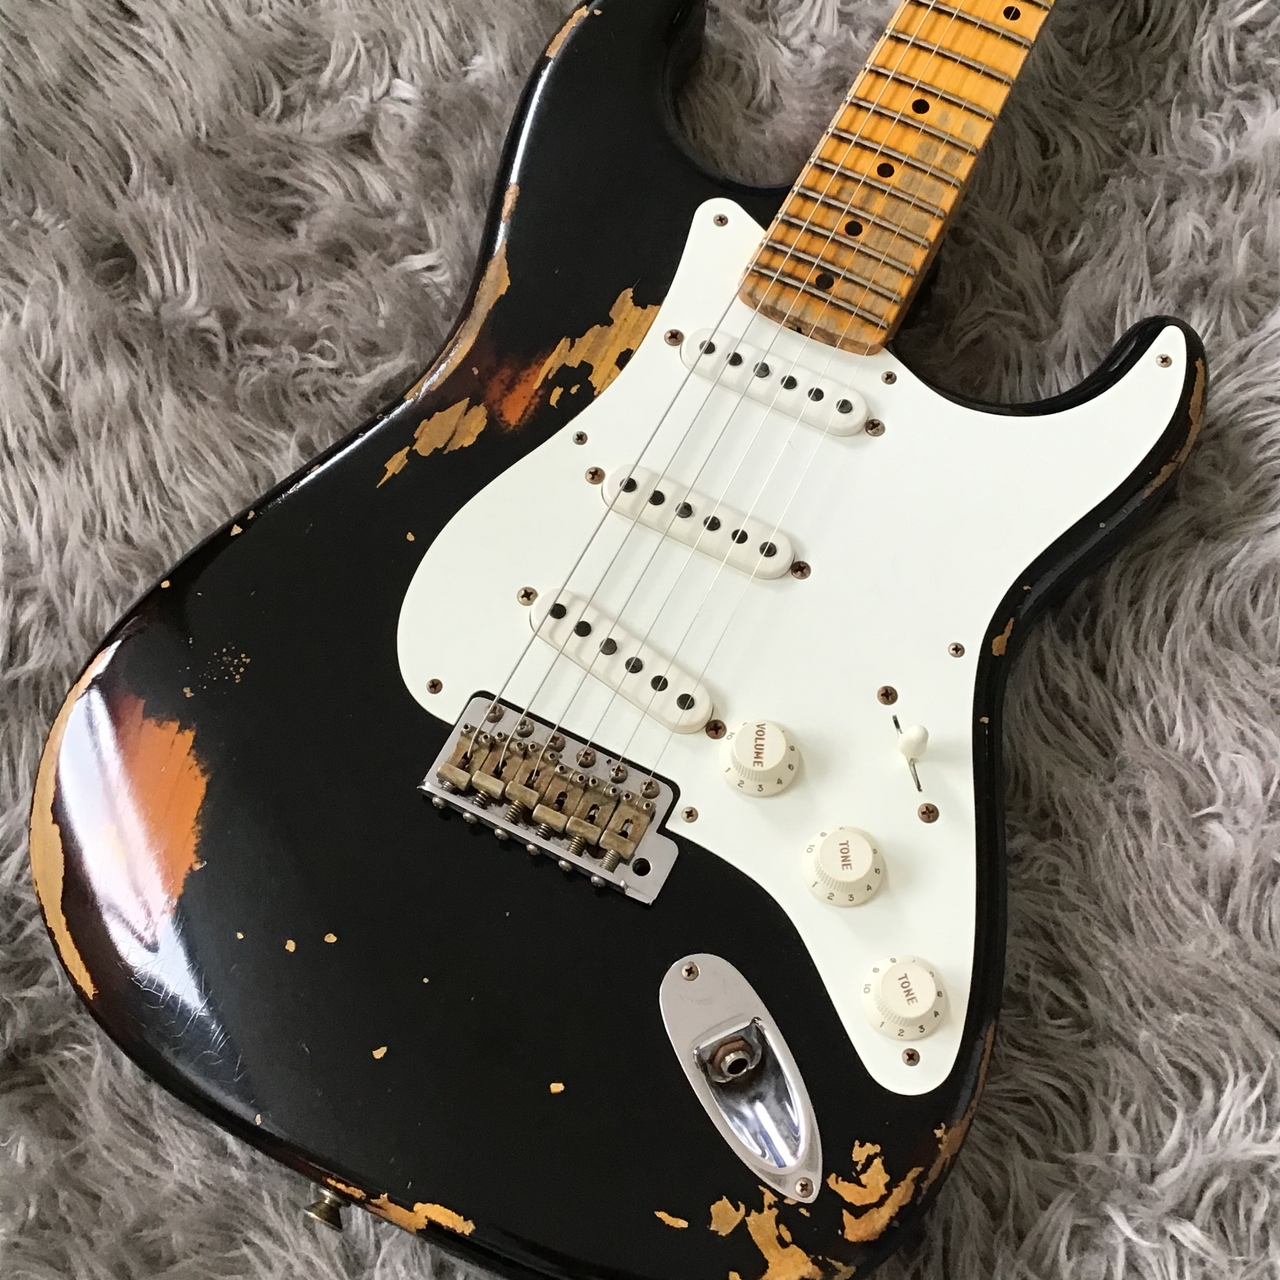 Fender Custom Shop 【フェンダー】1955 Stratocaster Heavy Relic, Aged Black over 2-Color Sunburst【クリアランスセール】